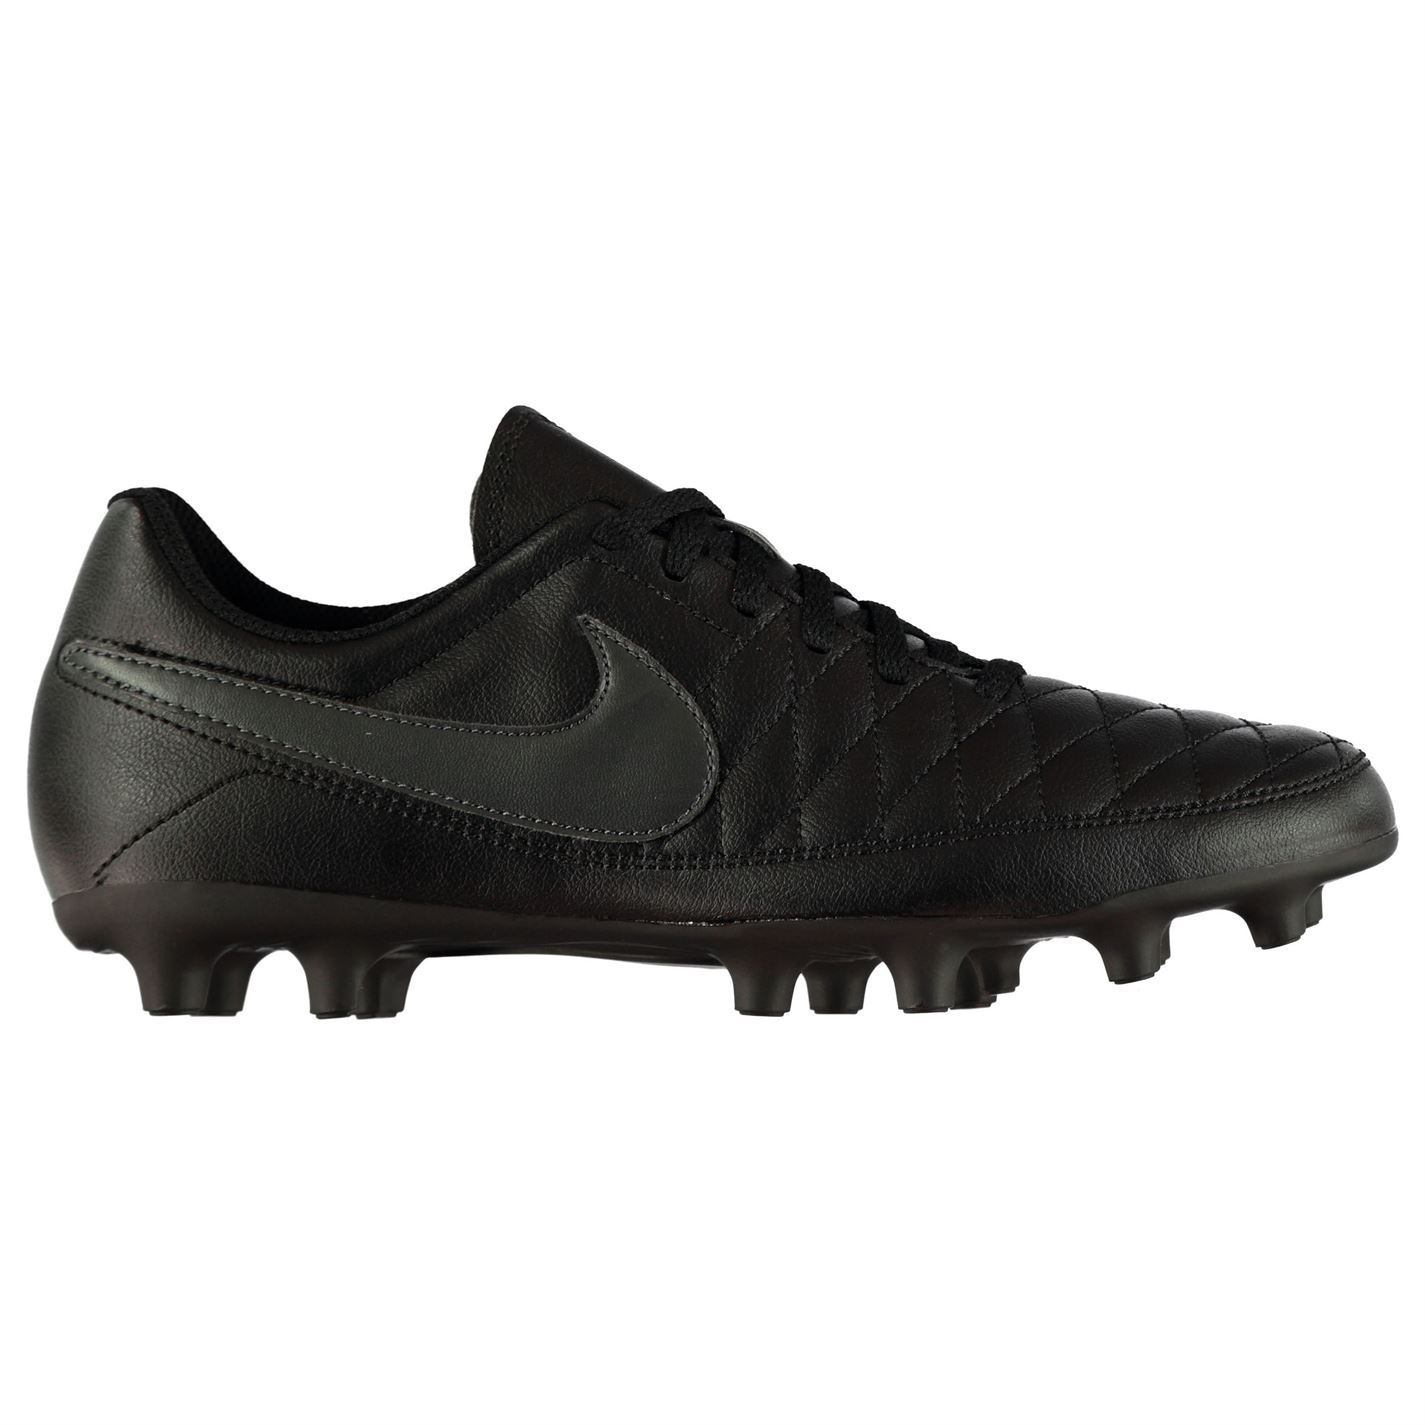 1146808a883 Nike Majestry FG Firm Ground Football Boots Mens Soccer Shoes Cleats ...